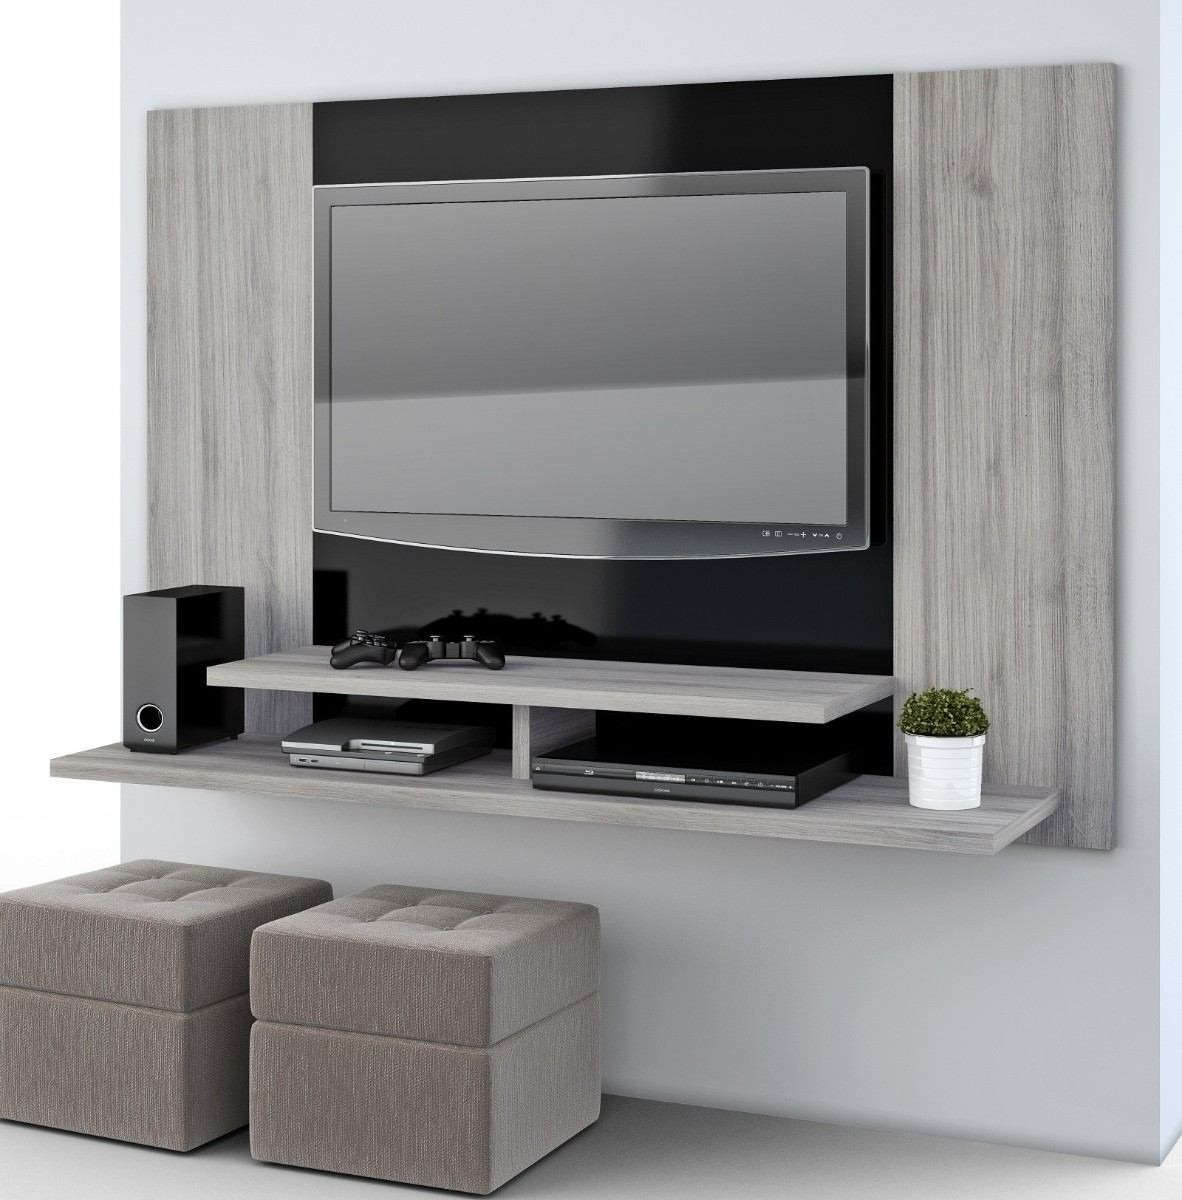 Mueble flotante para tv moderno ref manhatan - Fotos muebles para tv ...